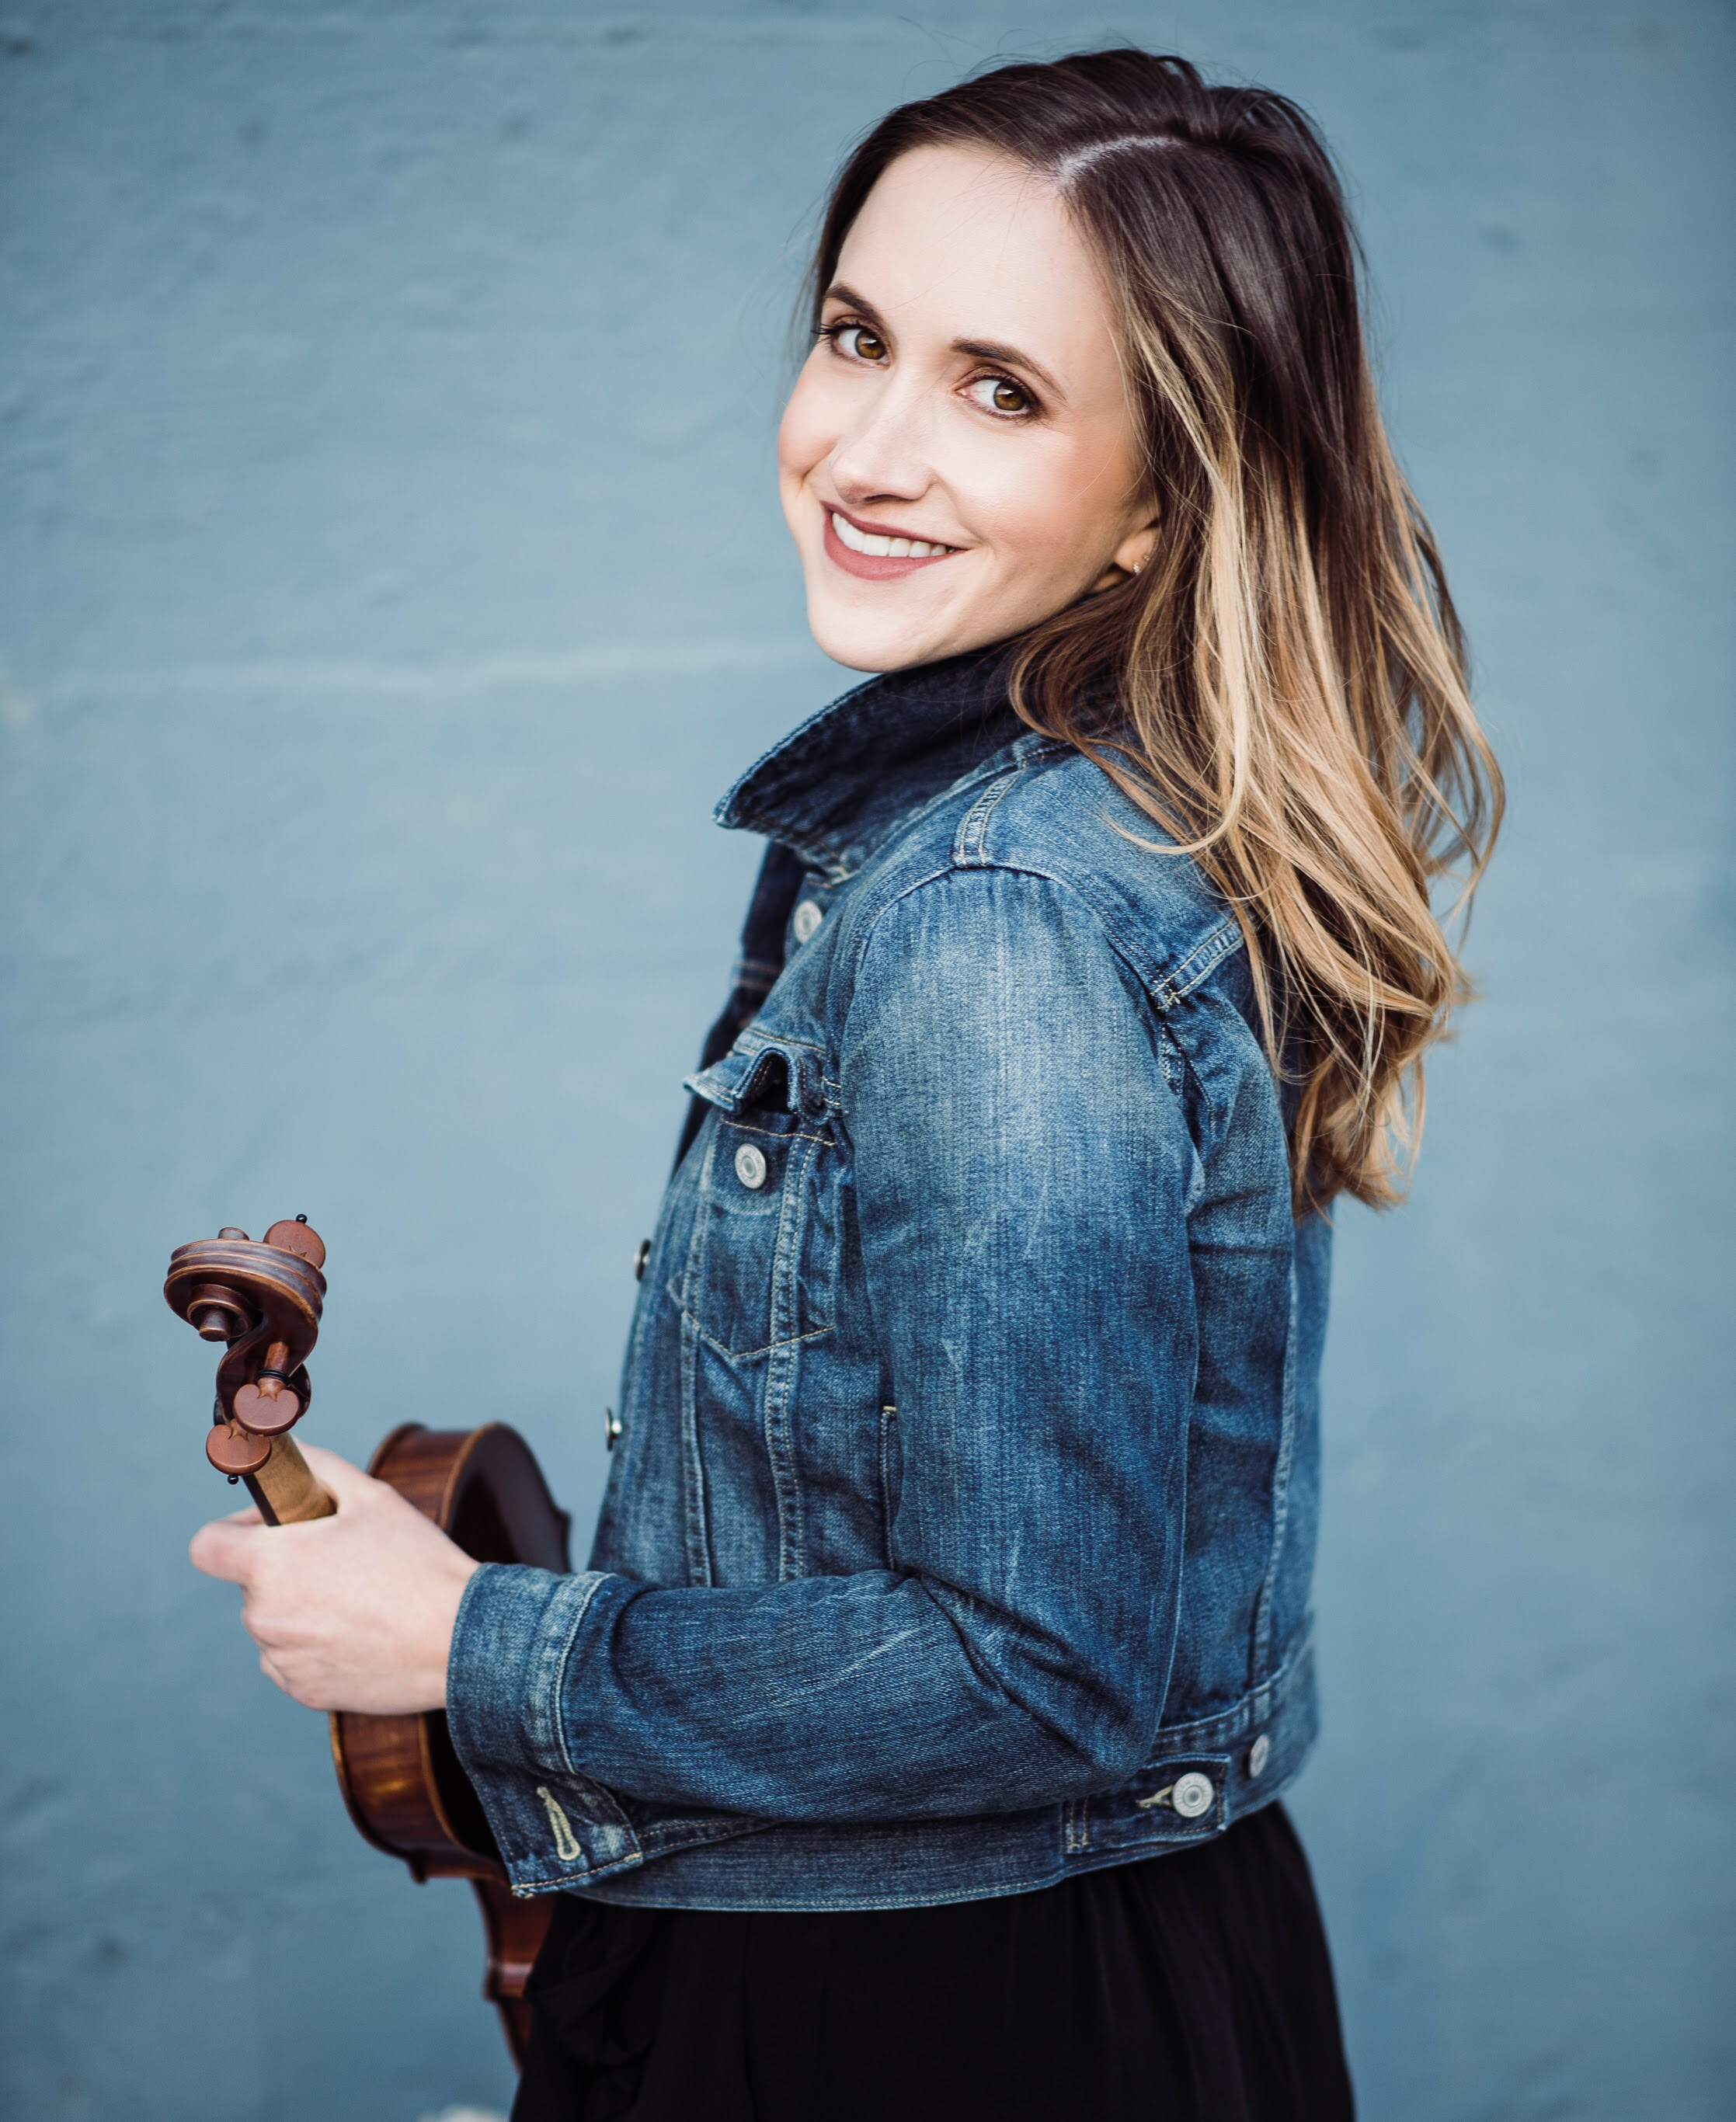 - Born in Philadelphia, Pennsylvania, violinist Emily Botel has performed throughout North America and Europe with the belief that music is a powerful tool to create connection and community. She is passionate about reaching new audiences through small ensemble and chamber orchestra performance. Emily is first violinist of the Amaranth Quartet, a founder and violinist with the unconducted, chamber orchestra One Found Sound, and a member of the San Francisco Chamber Orchestra. Emily has appeared as soloist with the San Francisco Academy Orchestra, has performed with many orchestras including California, Monterey, Marin, Oakland East Bay, Santa Rosa, and Stockton Symphonies. Emily has performed at various festivals such as Aldeburgh, Banff, Kronos, National Repertory Orchestra, New Music on the Point, Lake Tahoe, and Spoleto USA.Emily earned a Bachelor of Music degree from the Cleveland Institute of Music, with a minor in Psychology from Case Western Reserve University, a Master of Music degree from the San Francisco Conservatory of Music and an Artist Diploma in Orchestral Studies as a member of the San Francisco Academy Orchestra. She has studied with renowned pedagogues Linda Cerone and David Updegraff, award winning soloist and chamber musician Ian Swensen, San Francisco Symphony members Catherine Van Hoesen, David Chernyavsky, and Melissa Kleinbart and baroque violinists, Julie Andrijeski and Elizabeth Blumenstock.As a chamber musician, her work has taken her to a variety of venues including SFJAZZ, Herbst Theater, Freight And Salvage, Legion of Honor, and the DeYoung Museum. With a passion for early music, Emily was a founding member of the baroque ensemble MUSA and has performed with the San Francisco Bach Choir, the American Bach Soloists Academy, the Santa Cruz Baroque Festival, Berkeley Fringe Baroque Festival and Early Music America's Young Performers Festival.In addition to her classical work, Emily has collaborated and performed with various popular and i